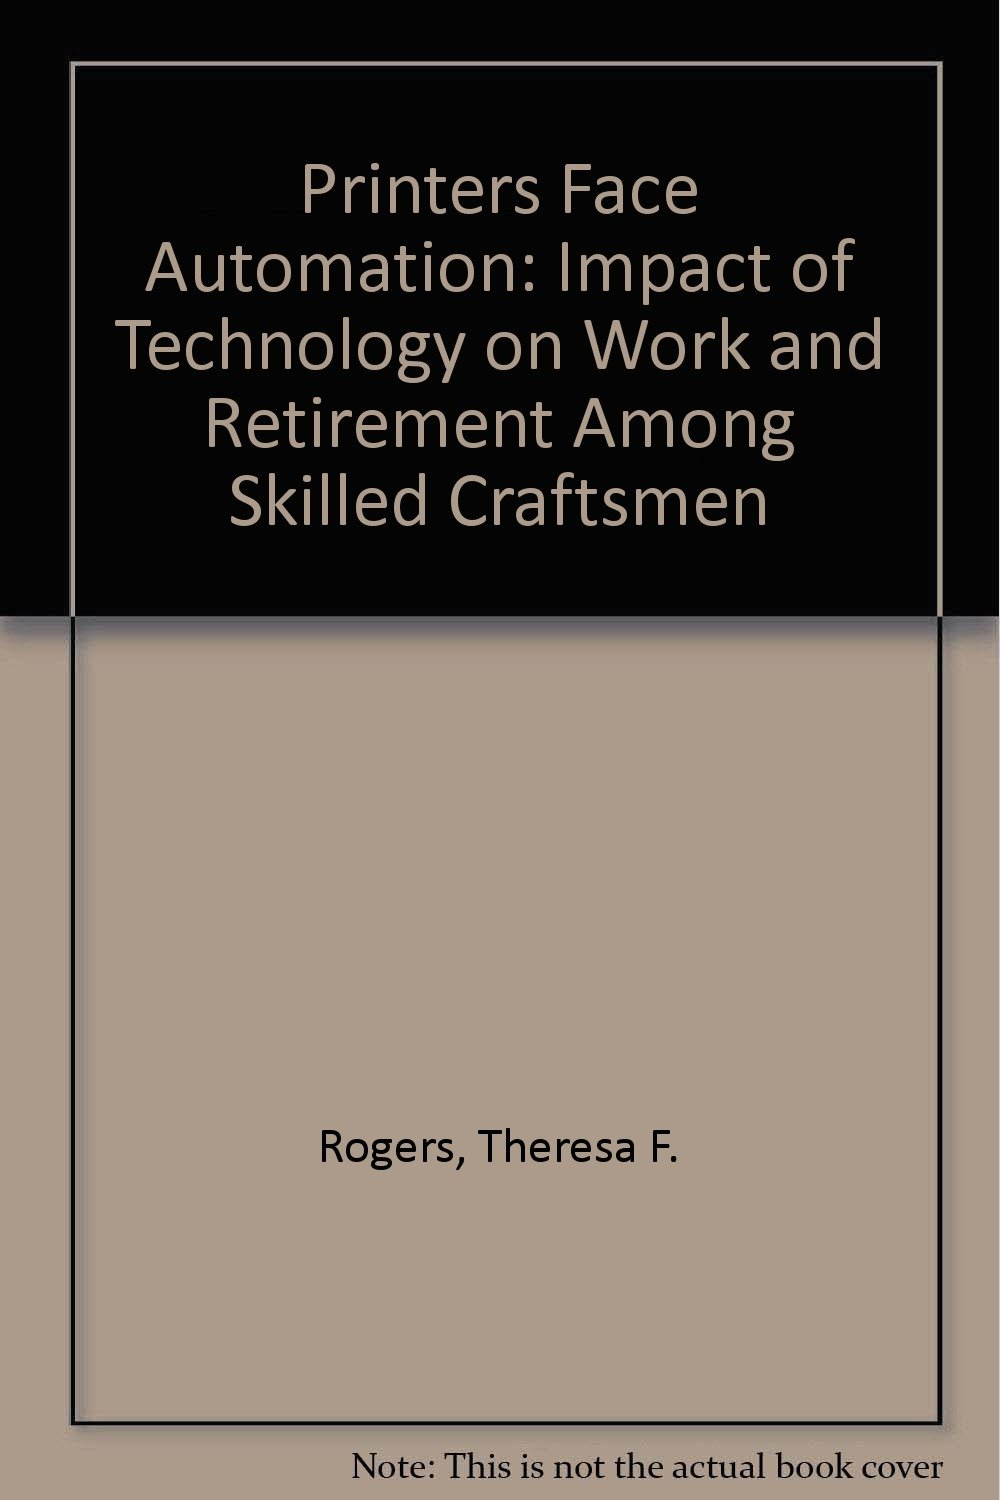 Printers Face Automation: Impact of Technology on Work and Retirement Among Skilled Craftsmen